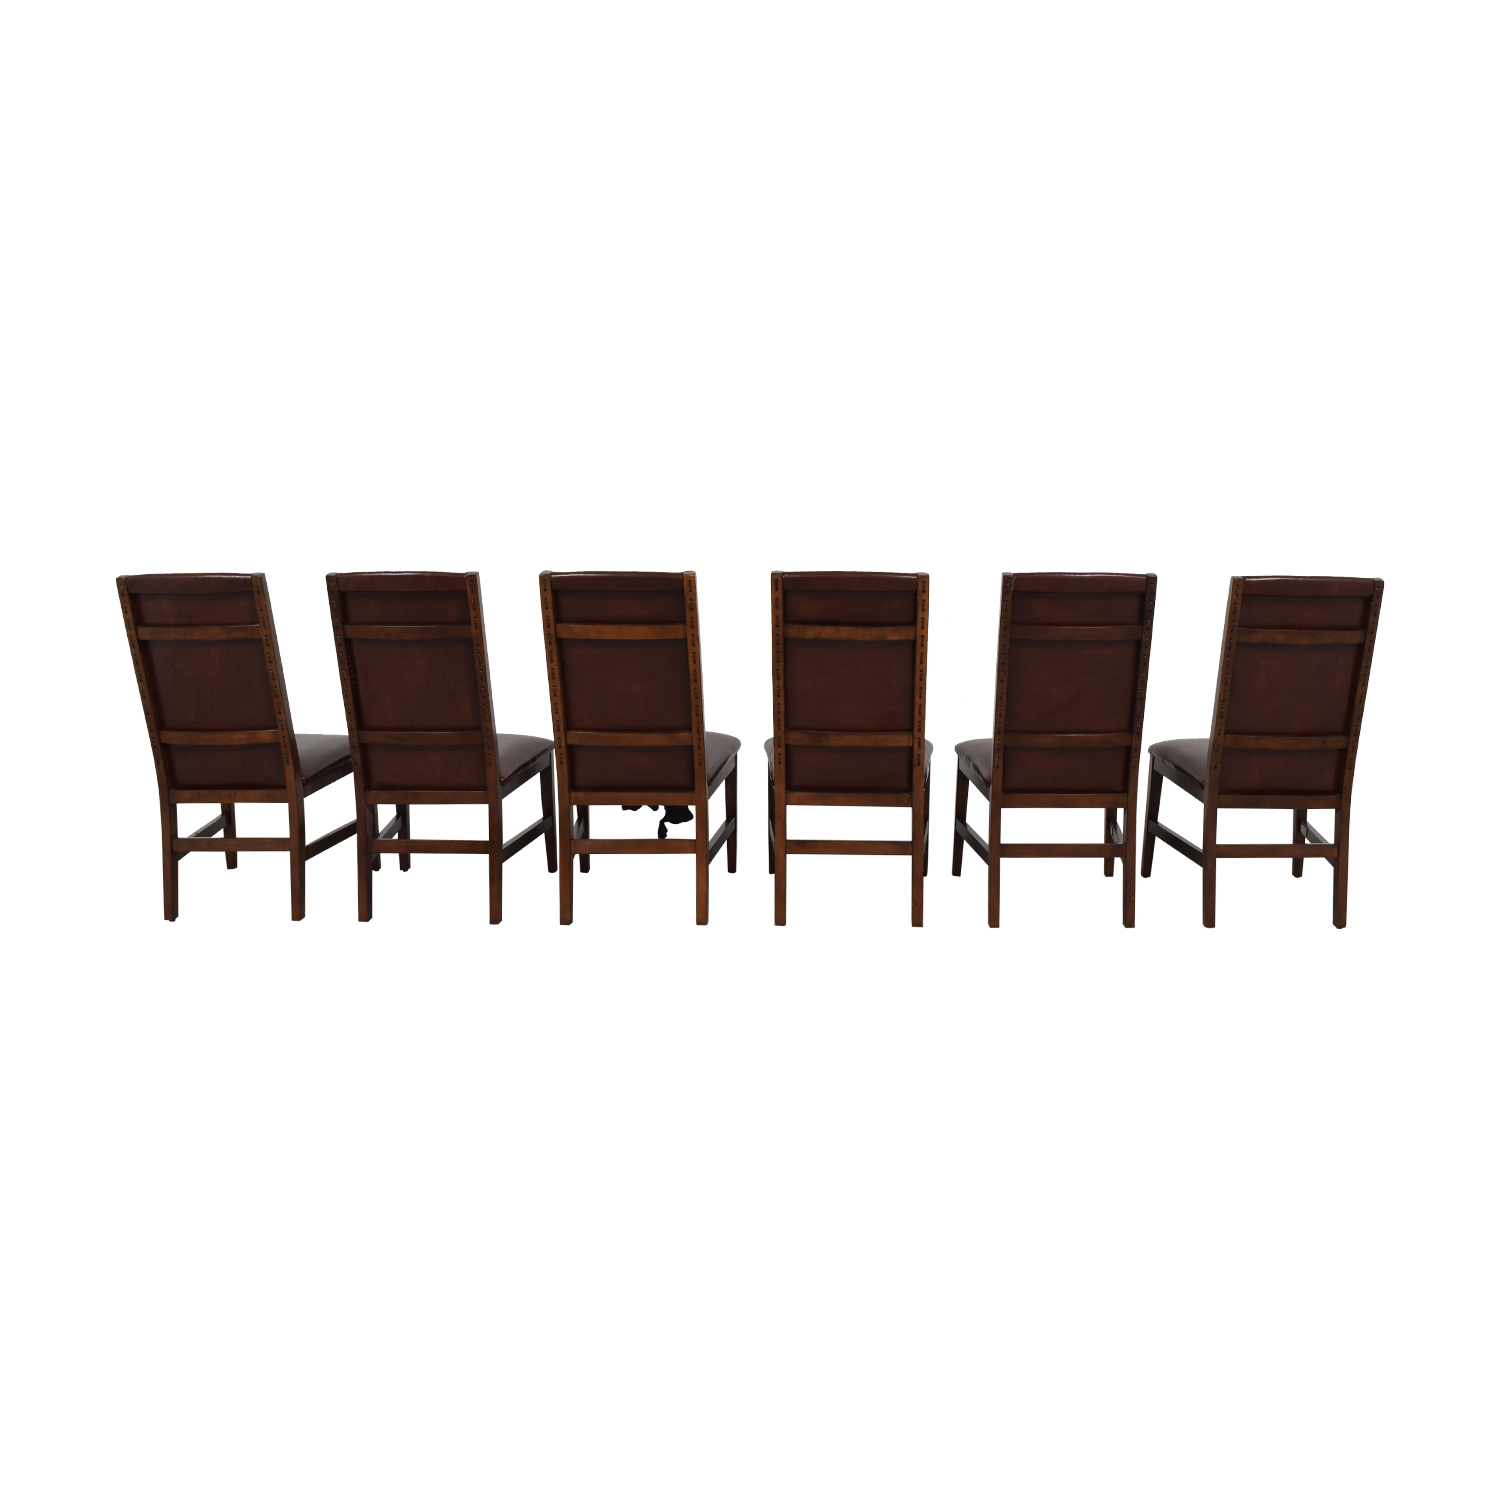 Nichols & Stone Nichols & Stone Brown Dining Chairs nyc